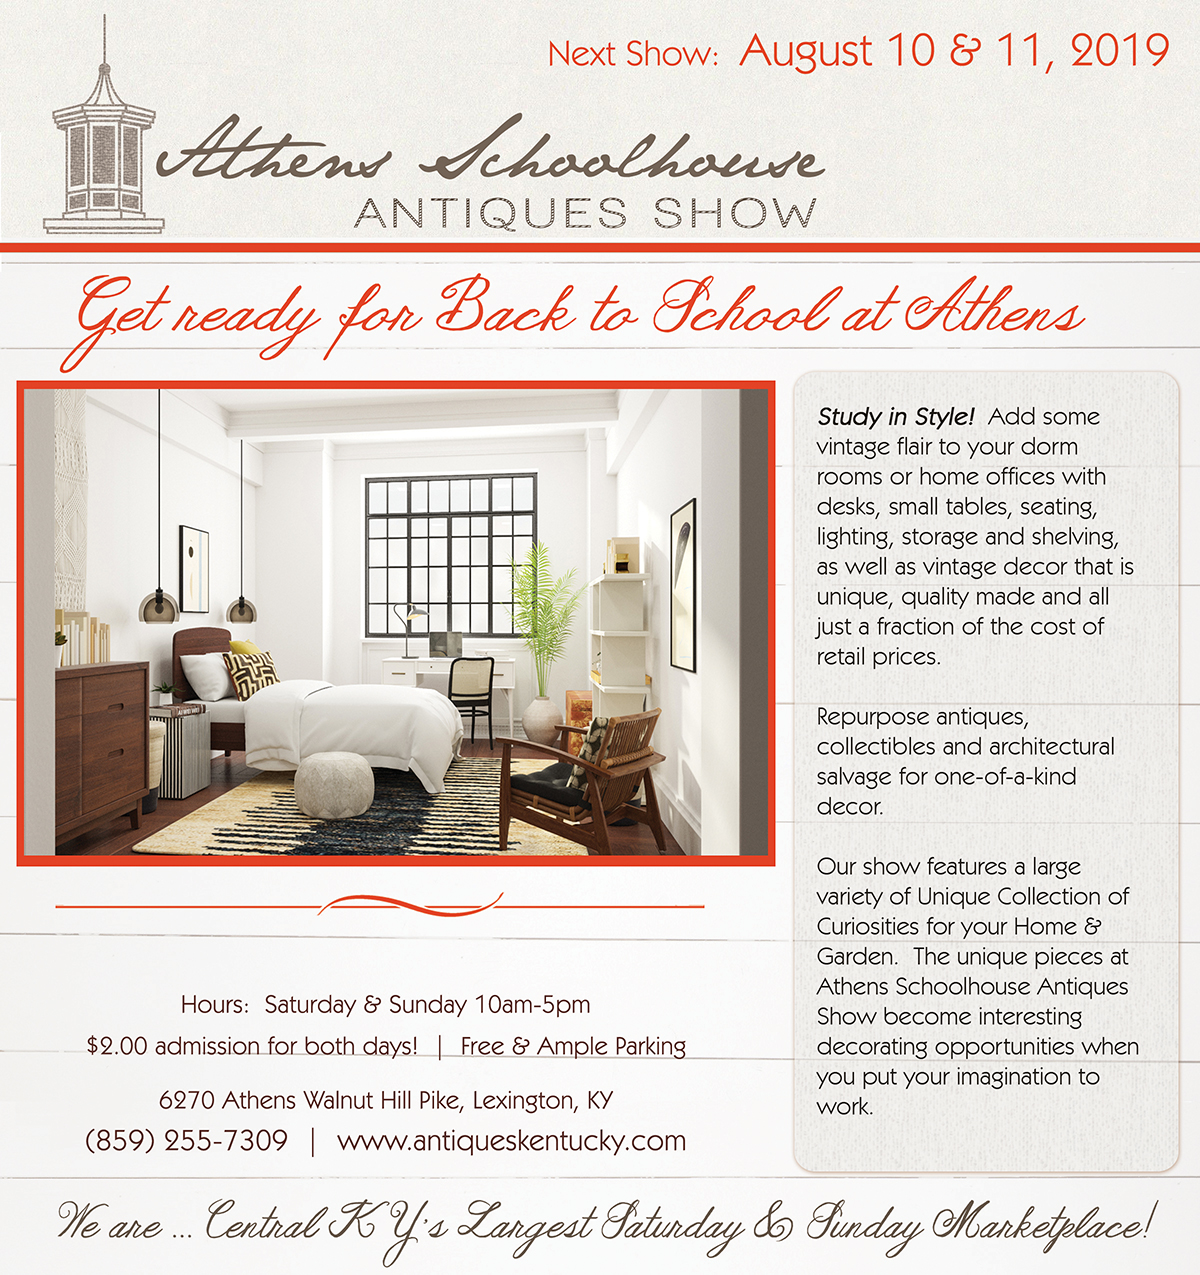 Athens Schoolhouse Antiques Show - Kentucky Living